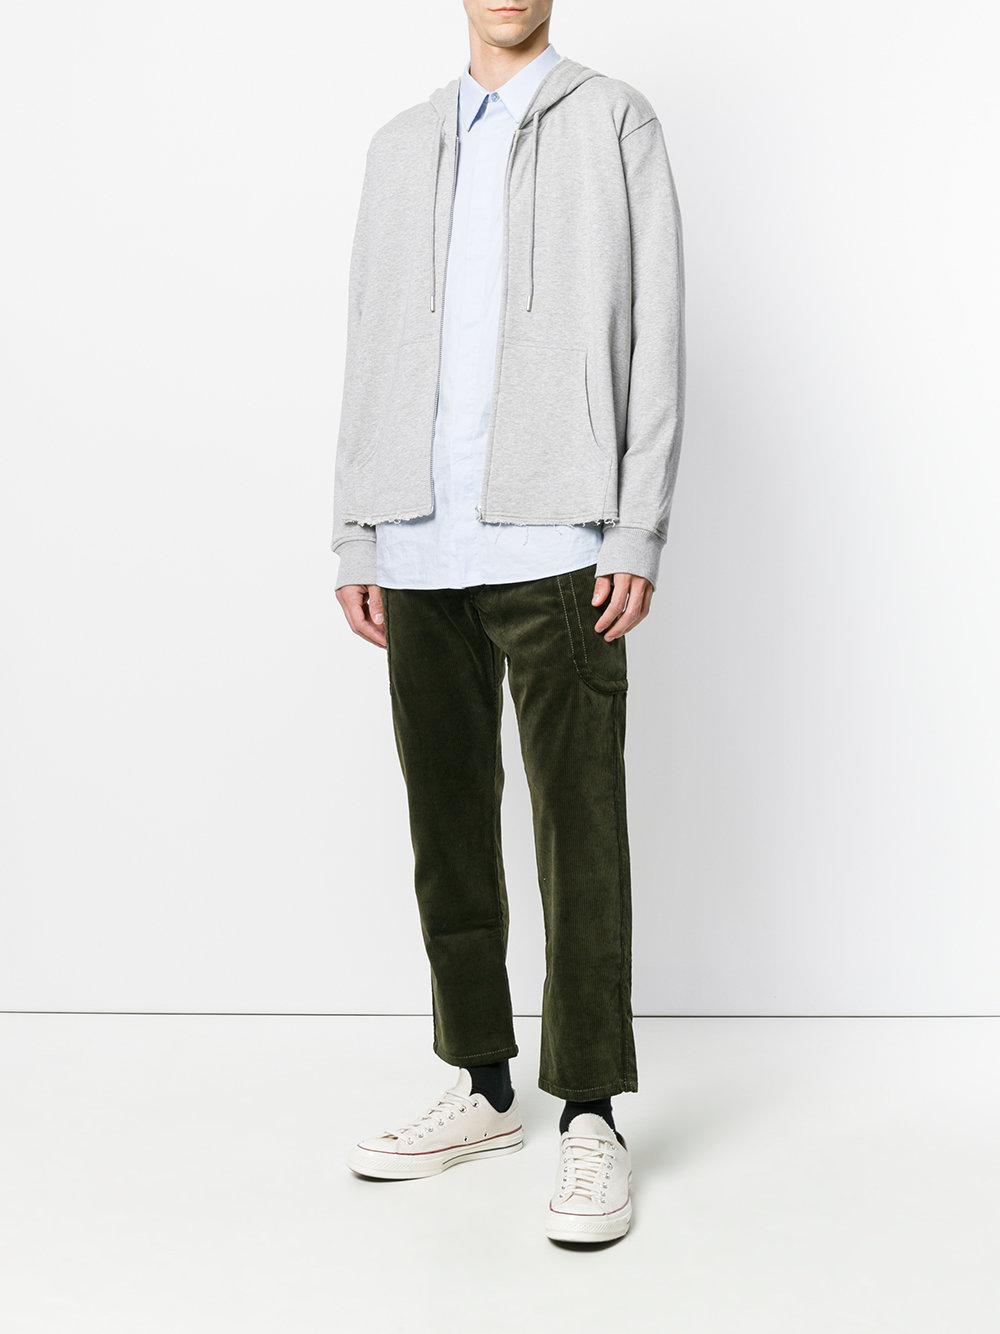 Comme des Garçons Corduroy Cropped Trousers in Green for Men